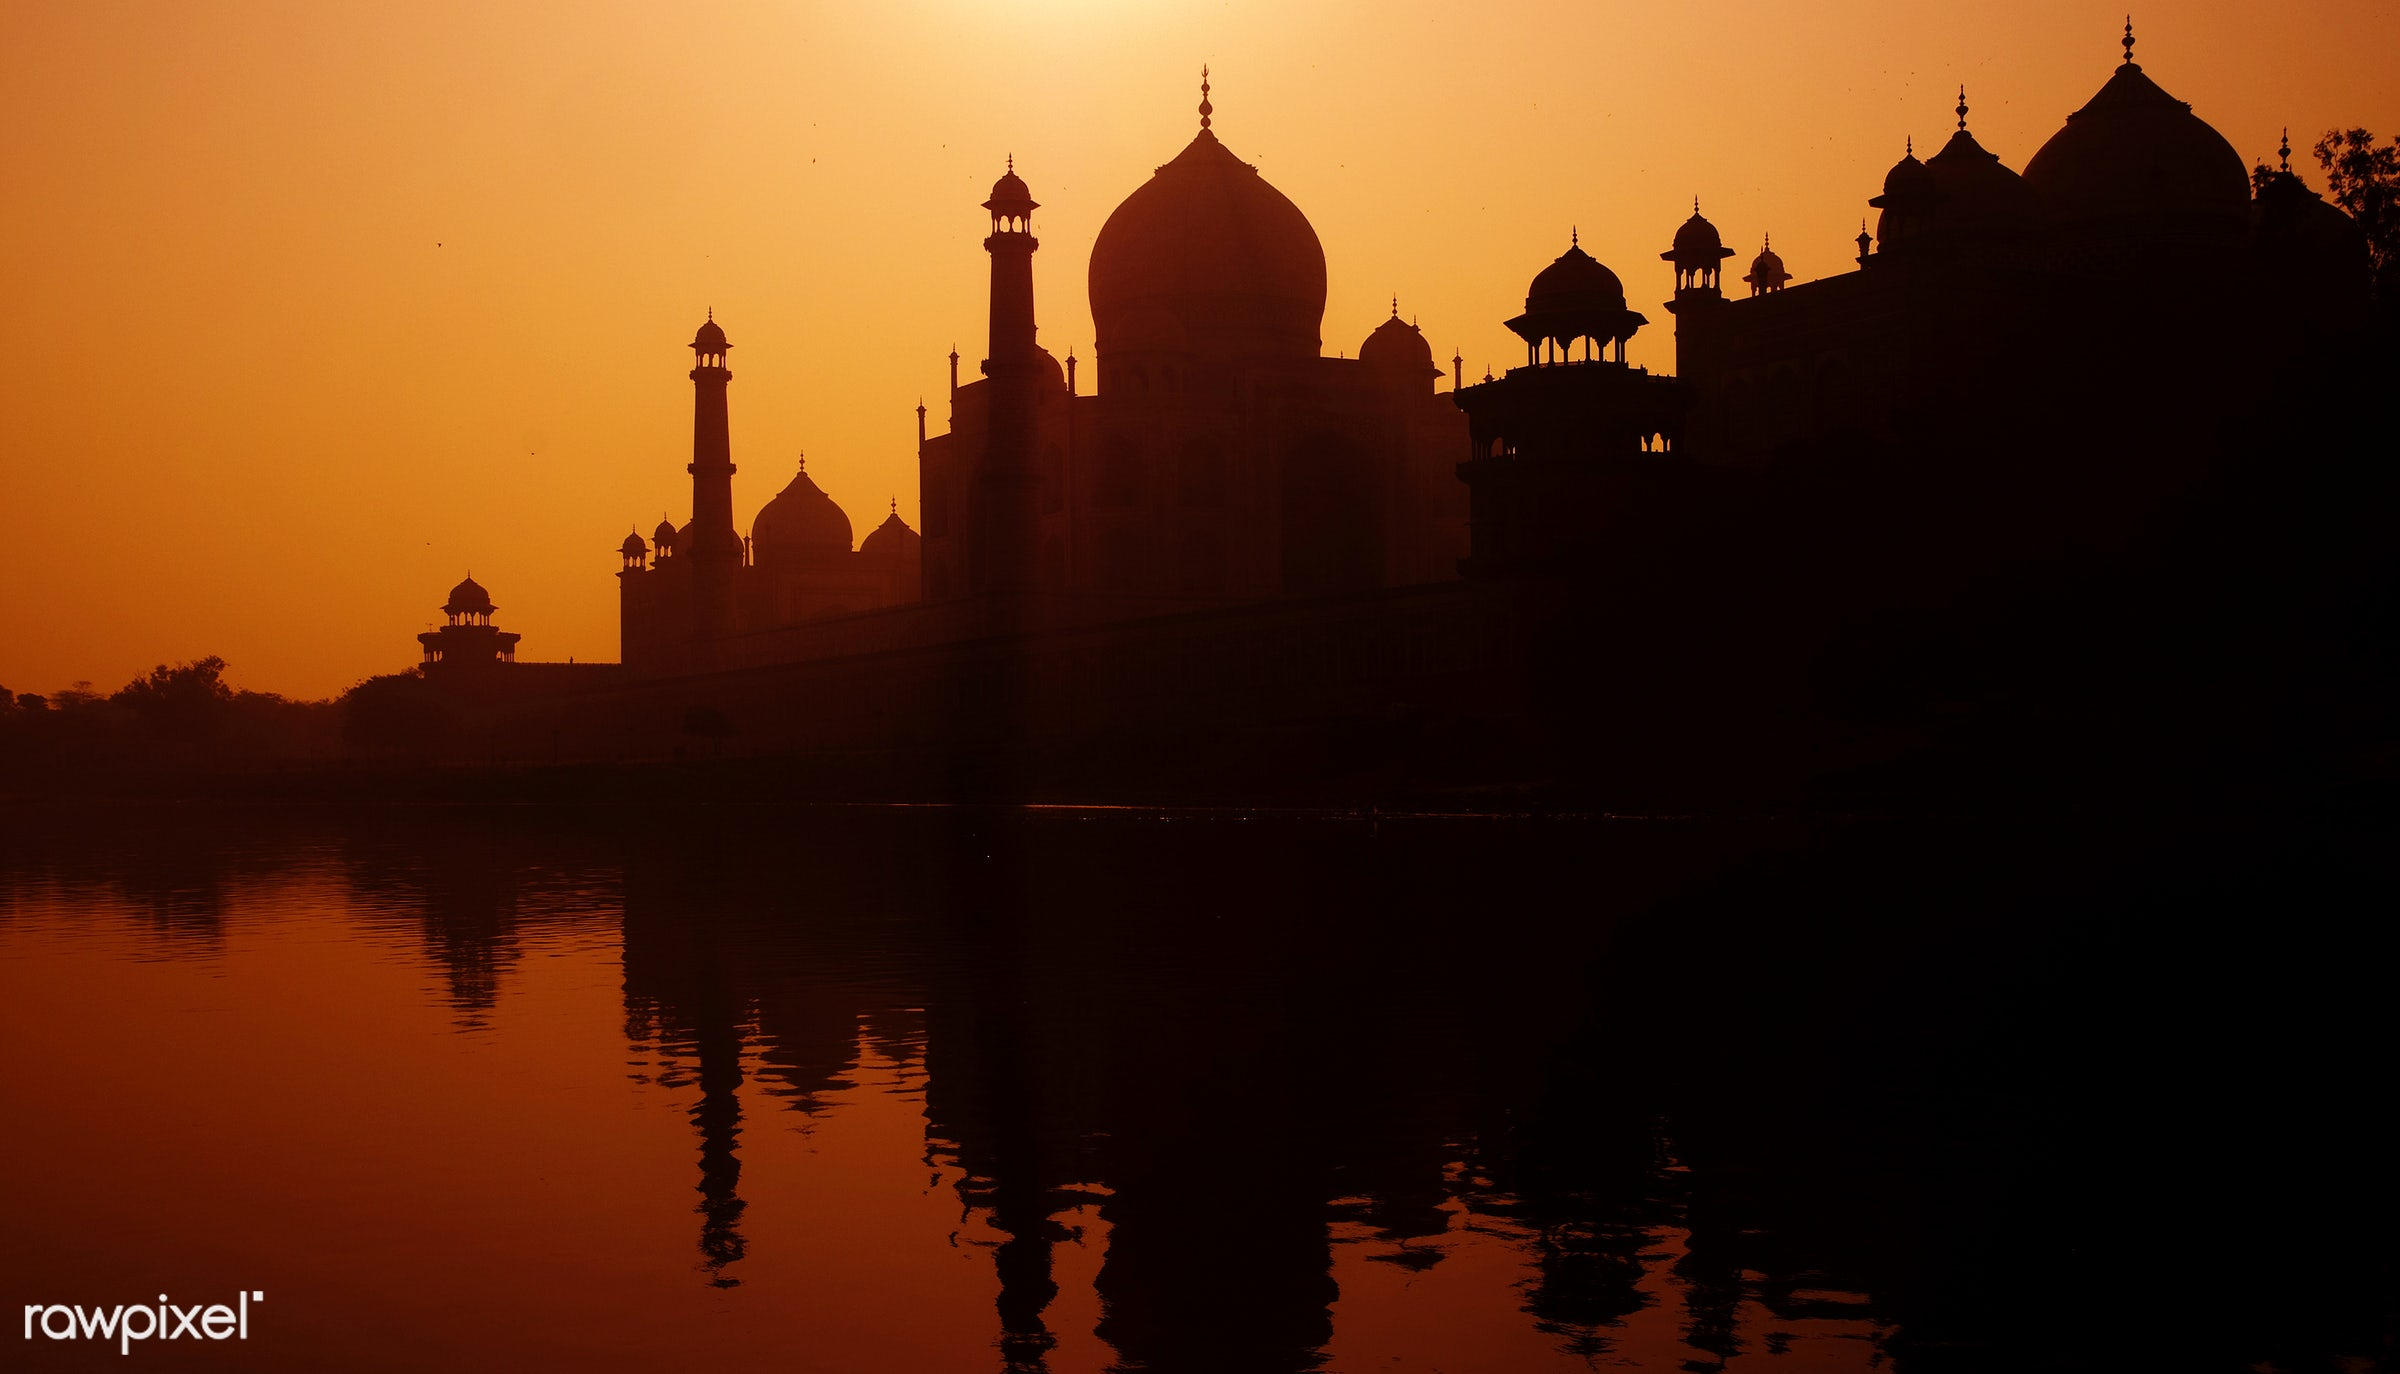 Sunset silhouette of a grand Taj Mahal. - sunset, 7 wonders, architectural styles, architecture, architecture and buildings...